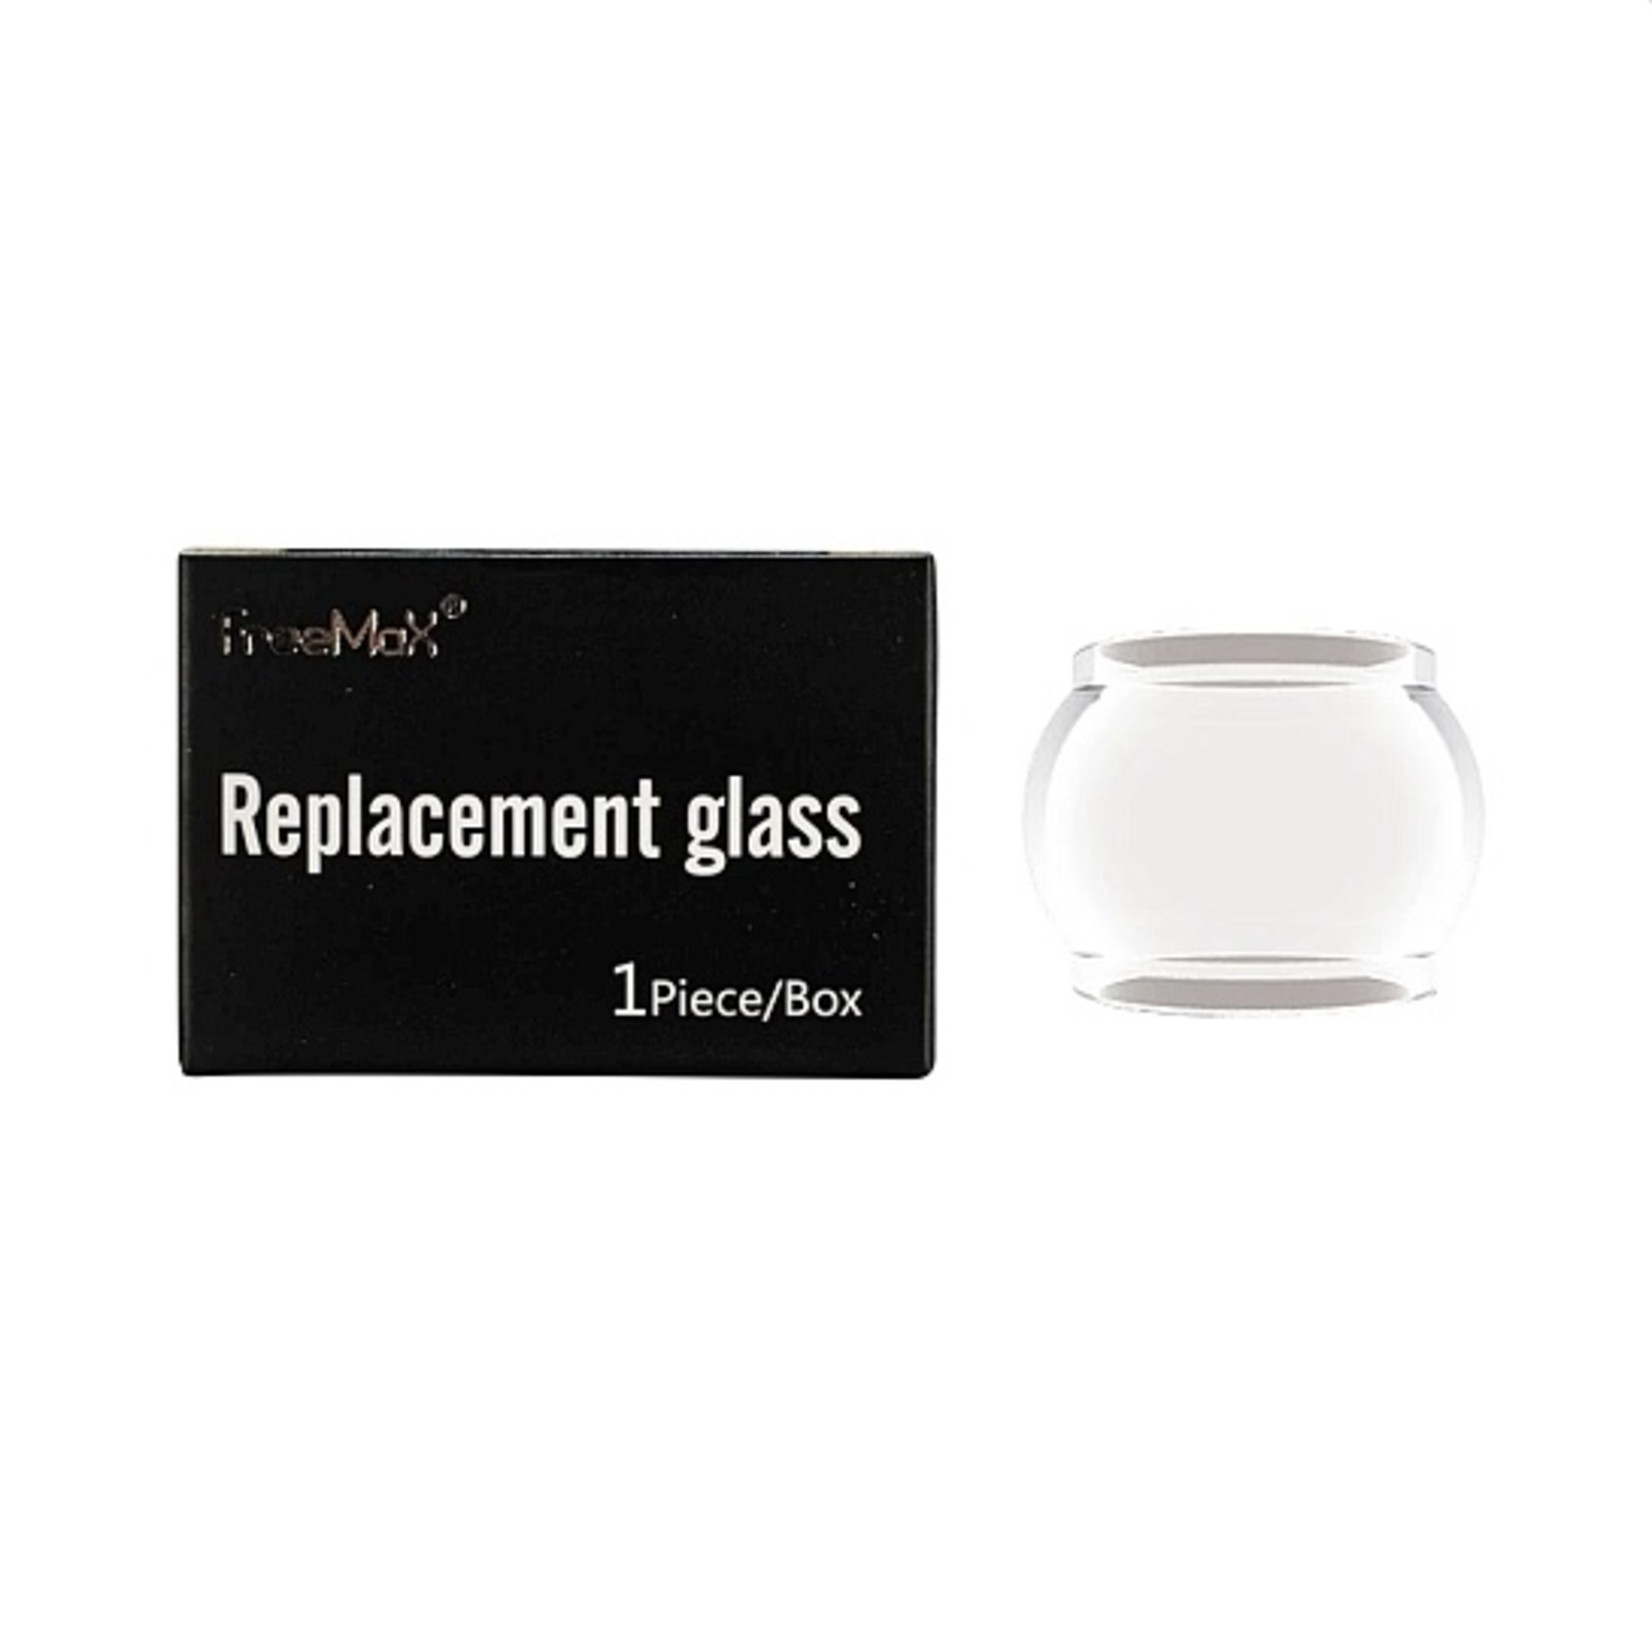 Replacement Glass Replacement Glass